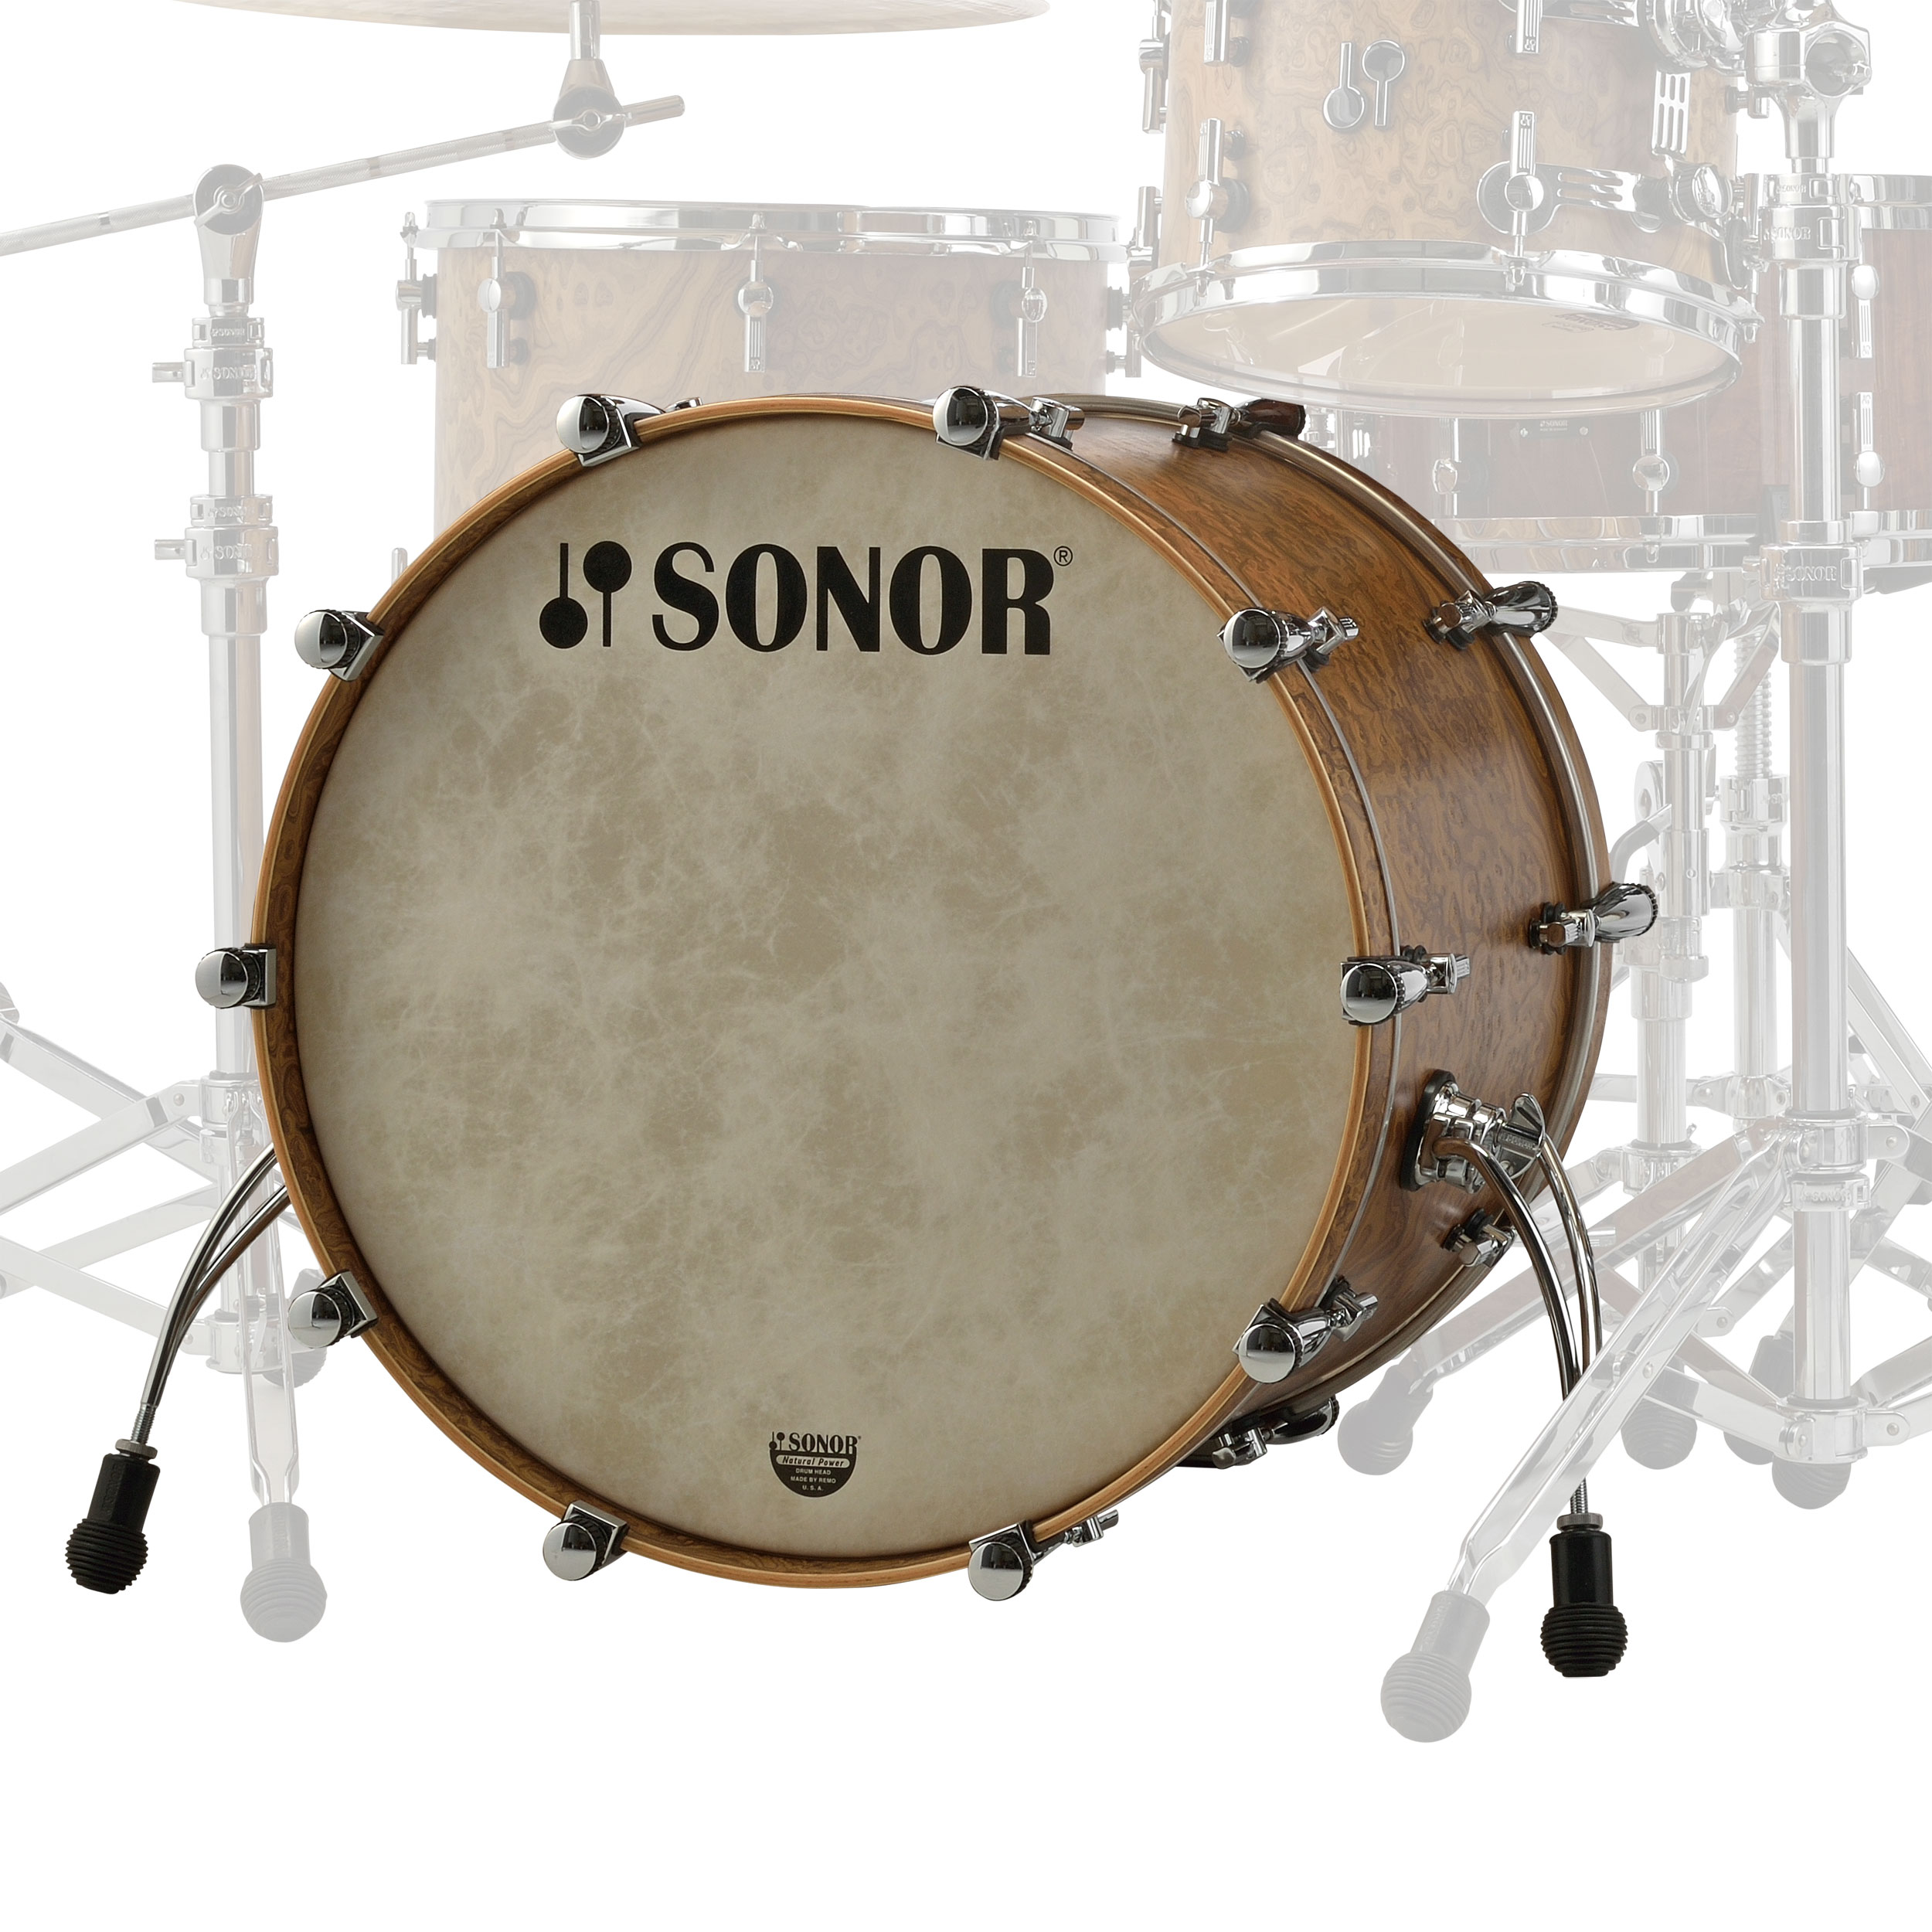 "Sonor 22"" x 17"" SQ2 Vintage Maple Bass Drum"